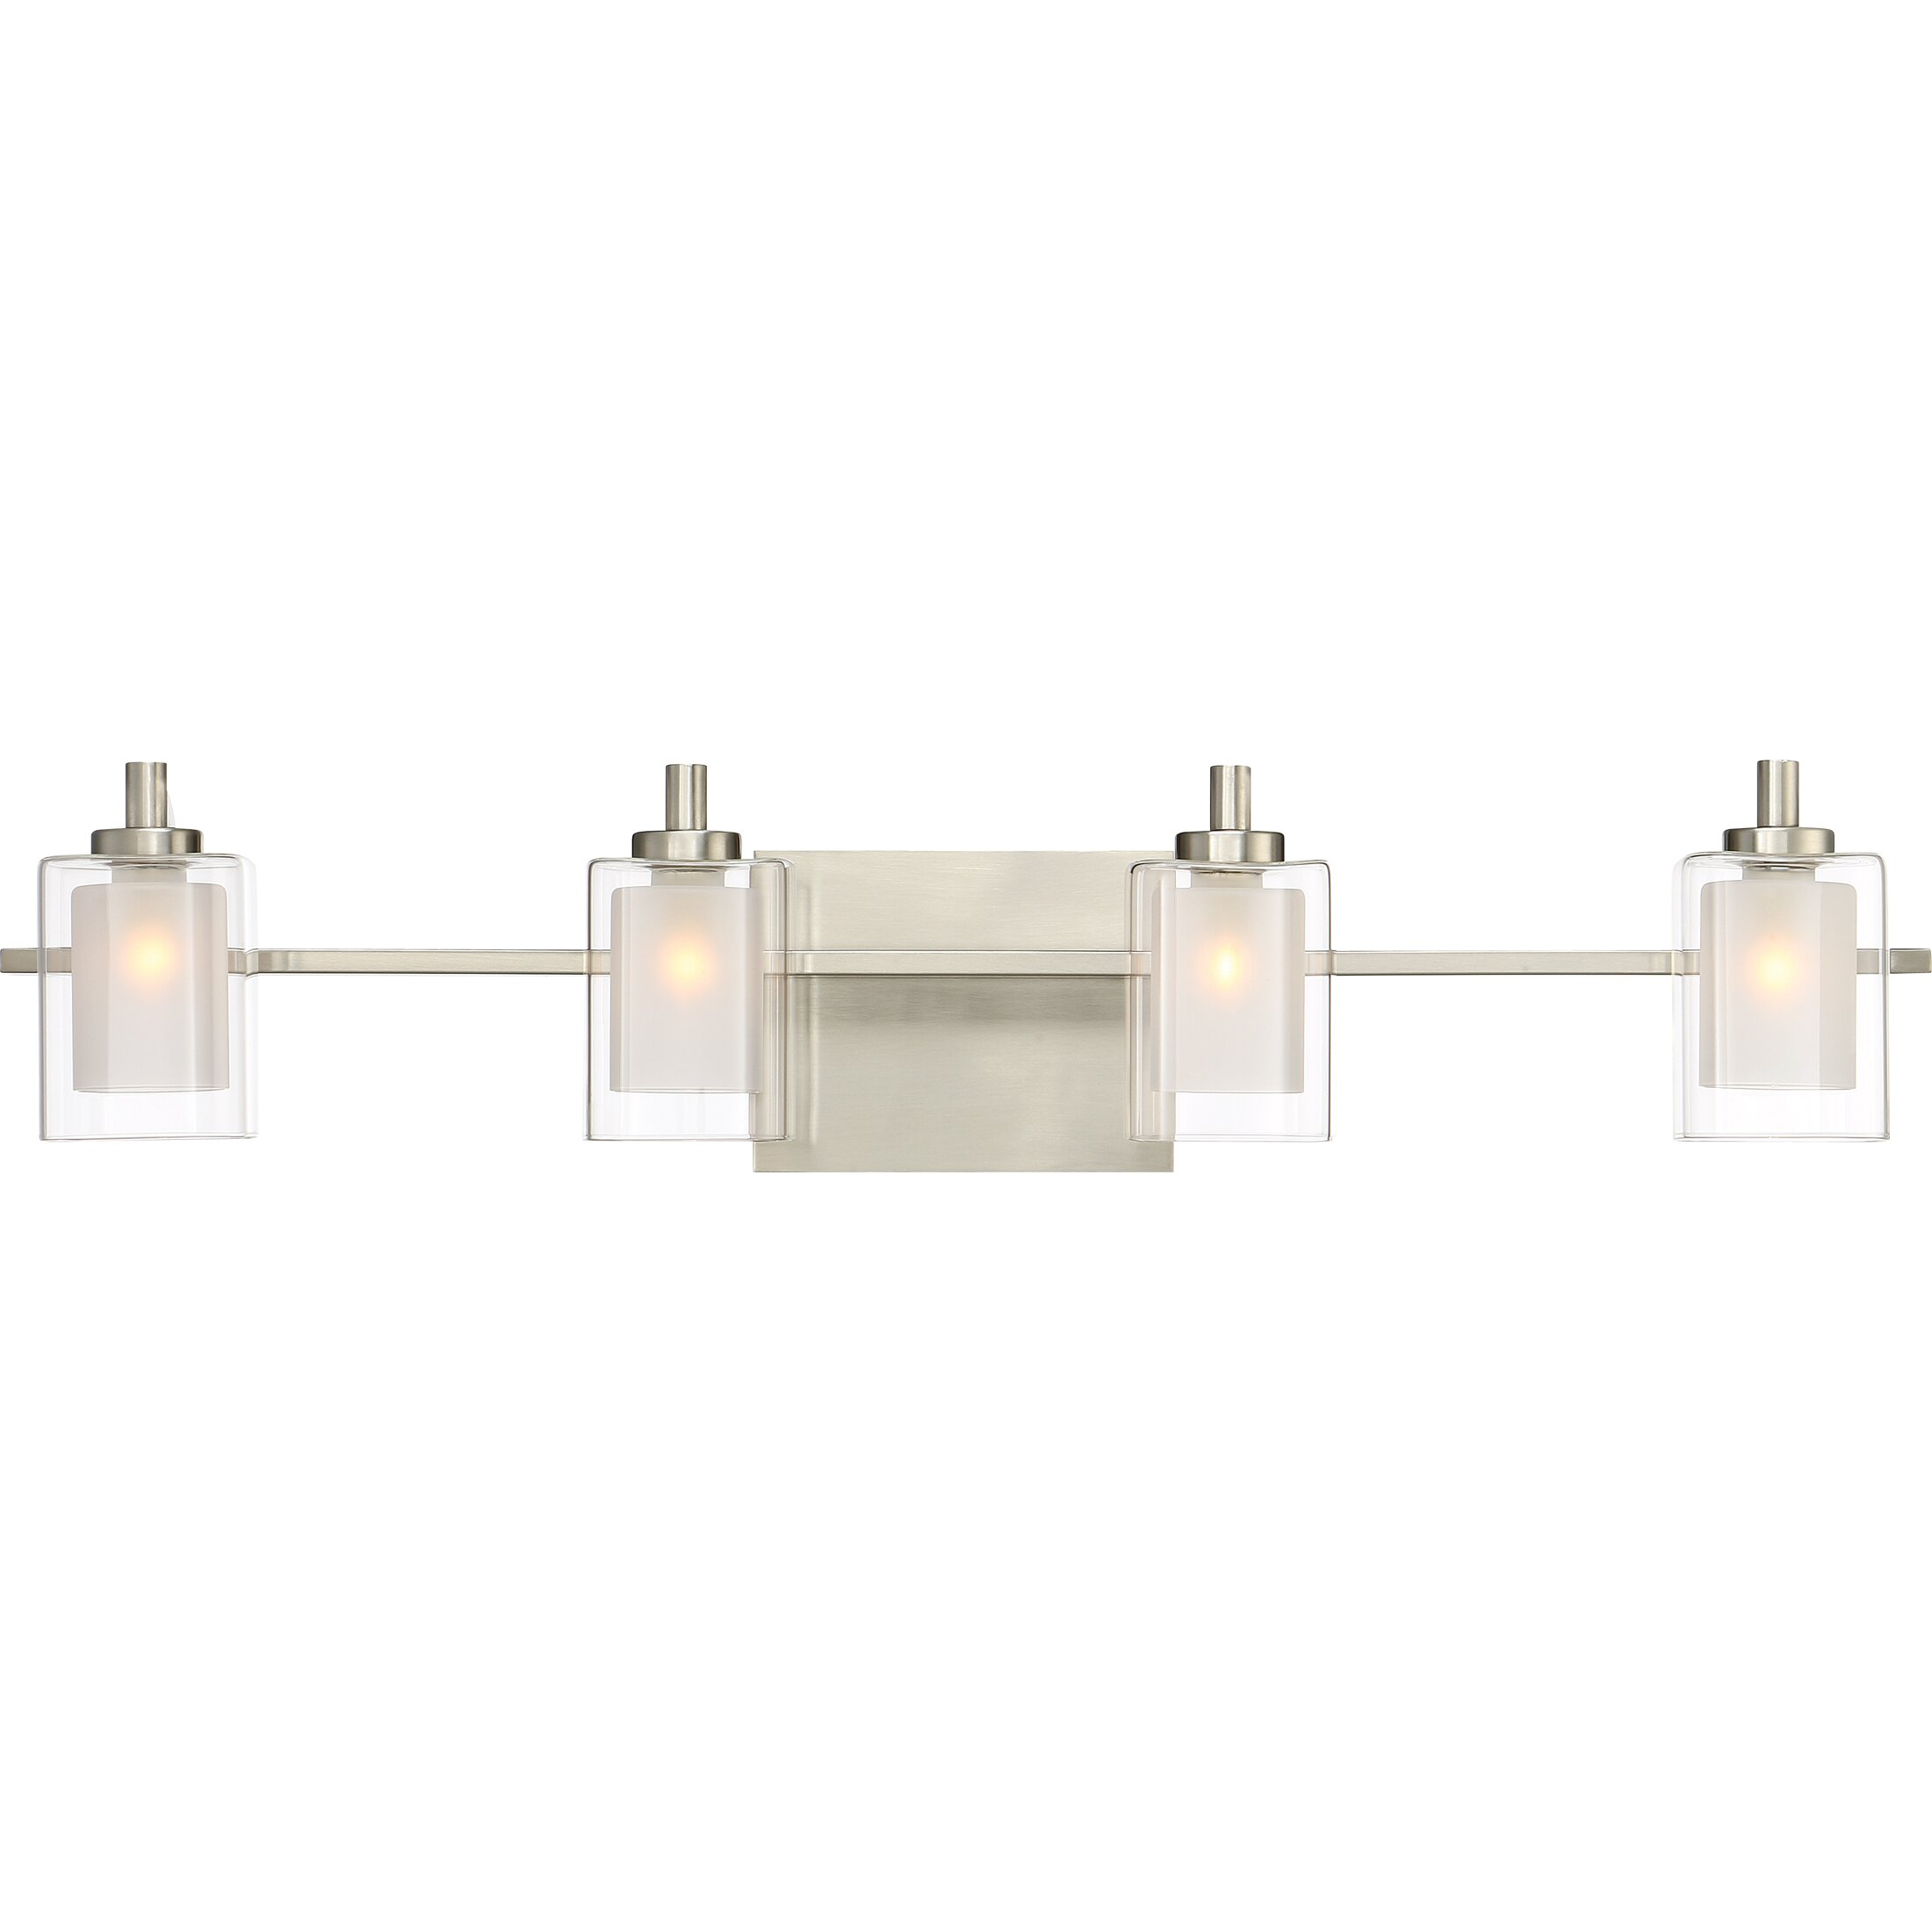 Quoizel Vanity Lights : Quoizel Kolt 4 Light Vanity light & Reviews Wayfair